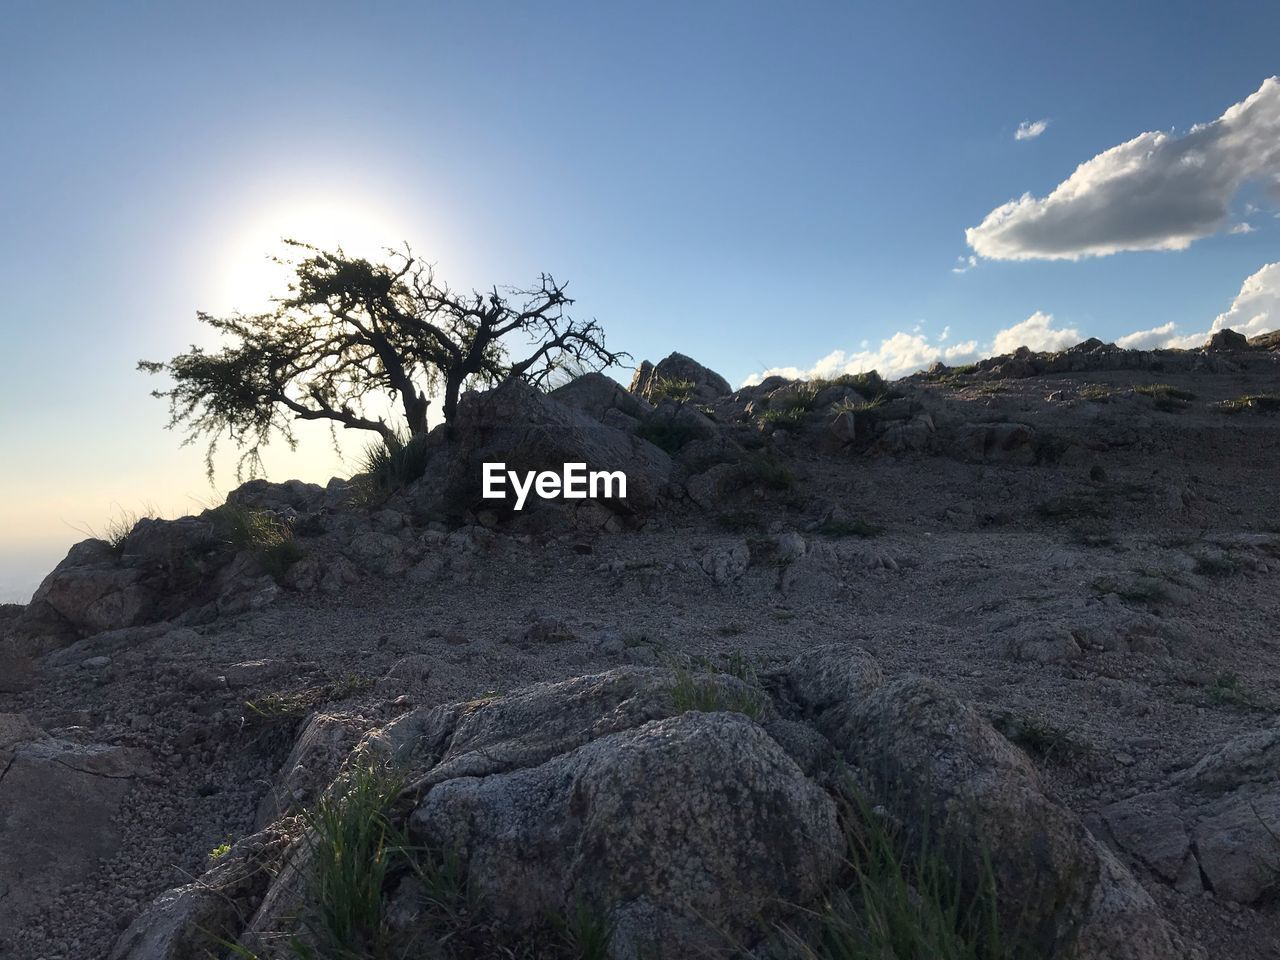 sky, rock, tranquility, scenics - nature, tranquil scene, beauty in nature, cloud - sky, non-urban scene, rock - object, nature, landscape, solid, environment, no people, day, plant, rock formation, physical geography, land, geology, outdoors, arid climate, climate, formation, eroded